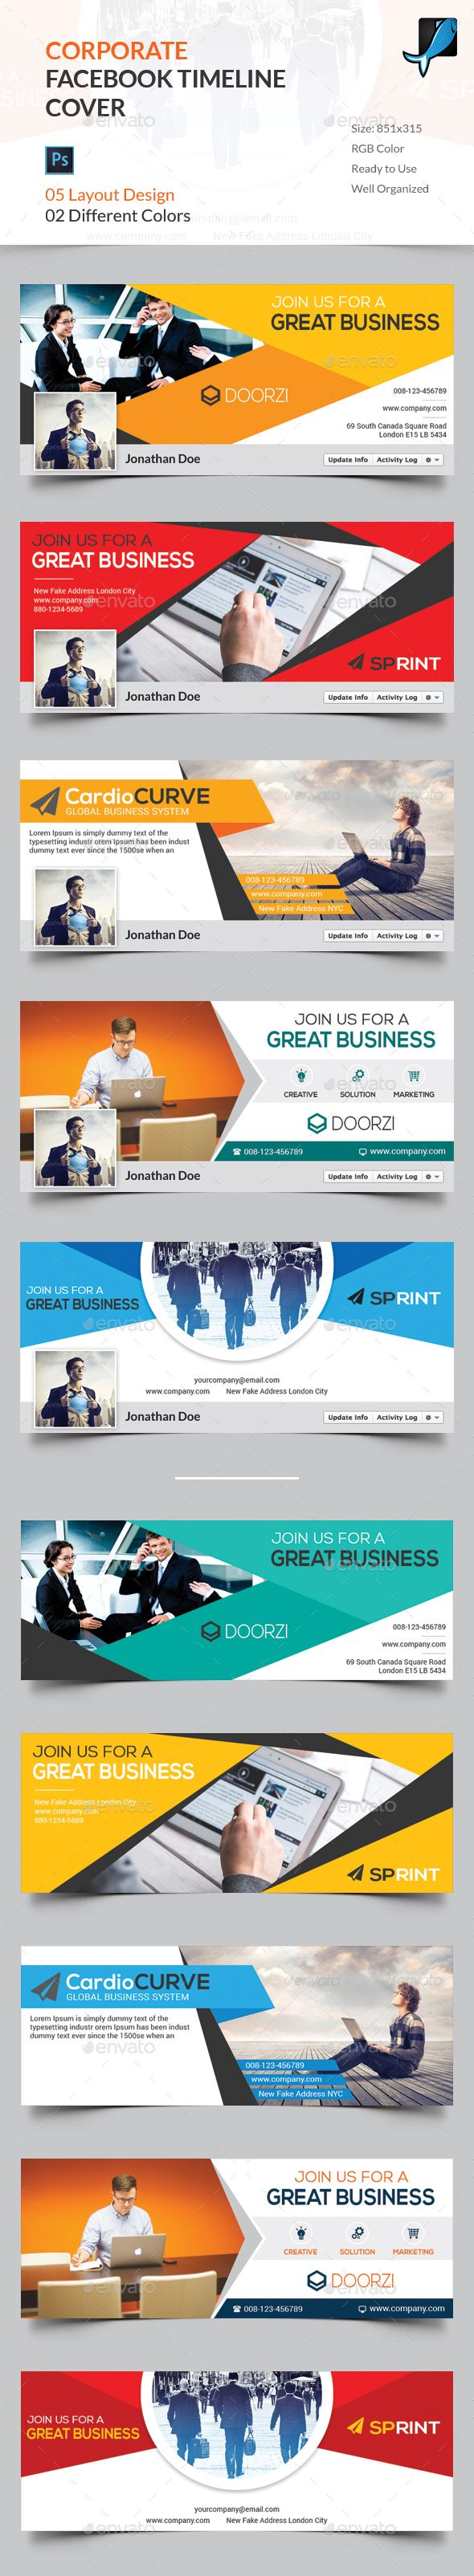 5 Corporate Facebook Timeline Cover Templates PSD. Download here: http://graphicriver.net/item/05-corporate-facebook-timeline-cover/15956524?ref=ksioks